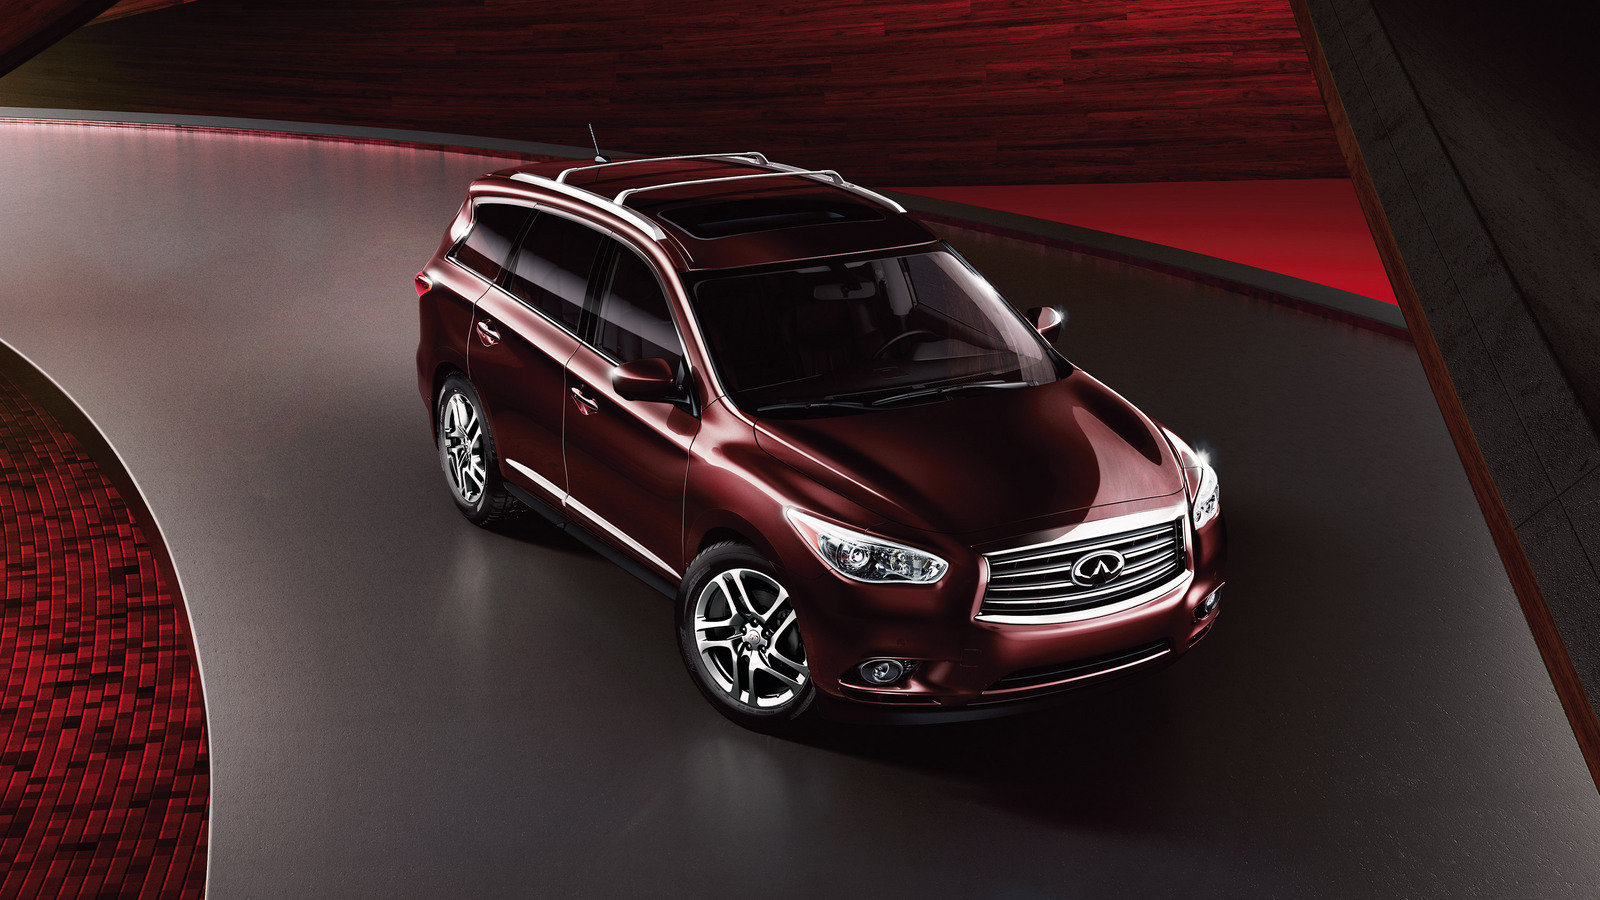 Hqdefault besides Oem Headrests also Q moreover Maxresdefault additionally . on 2011 infiniti qx56